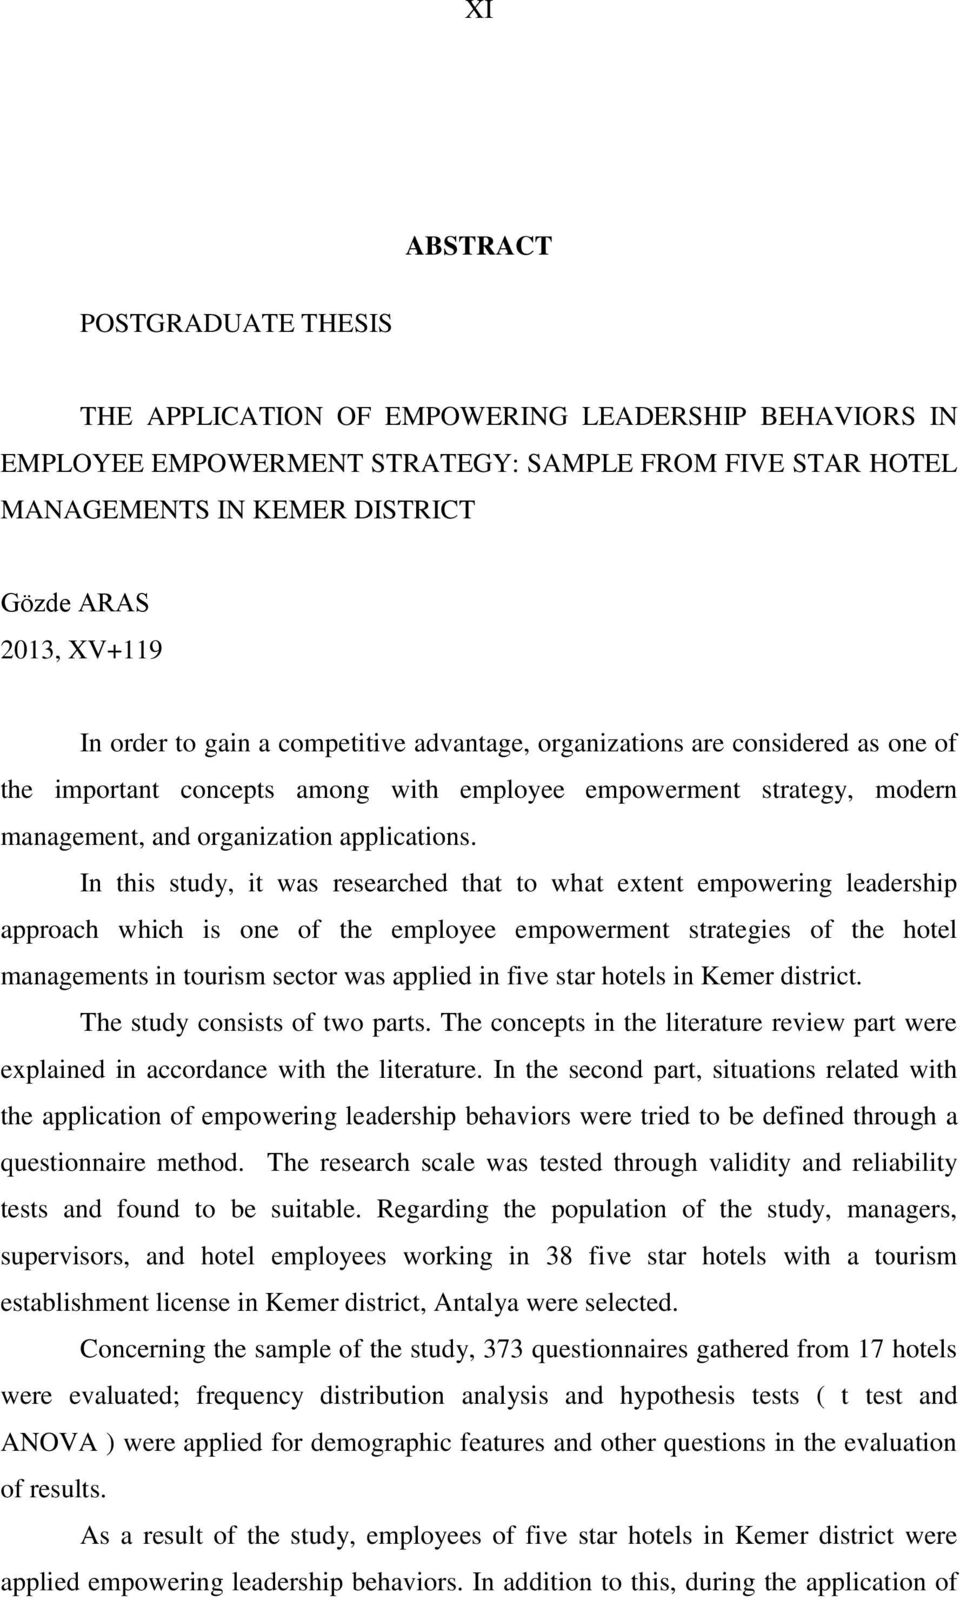 In this study, it was researched that to what extent empowering leadership approach which is one of the employee empowerment strategies of the hotel managements in tourism sector was applied in five